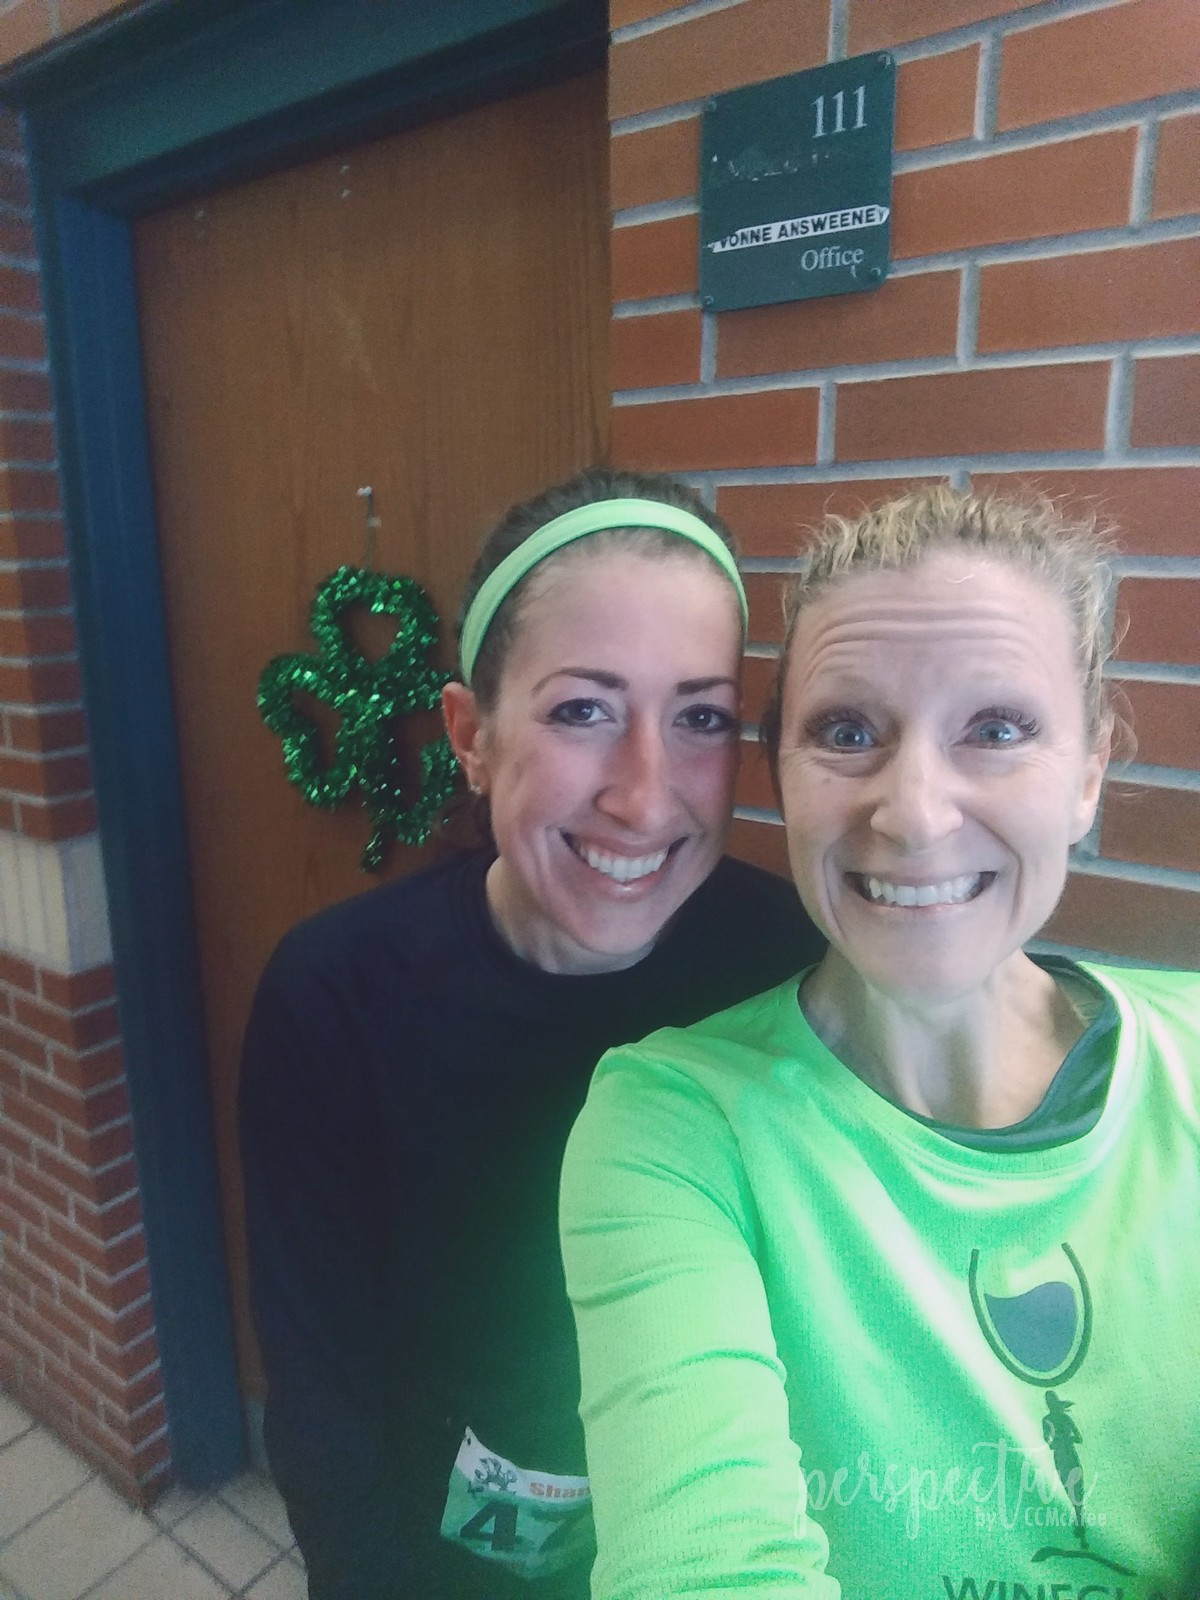 My race buddy!  She was fantastic.  I'm so glad we found each other!